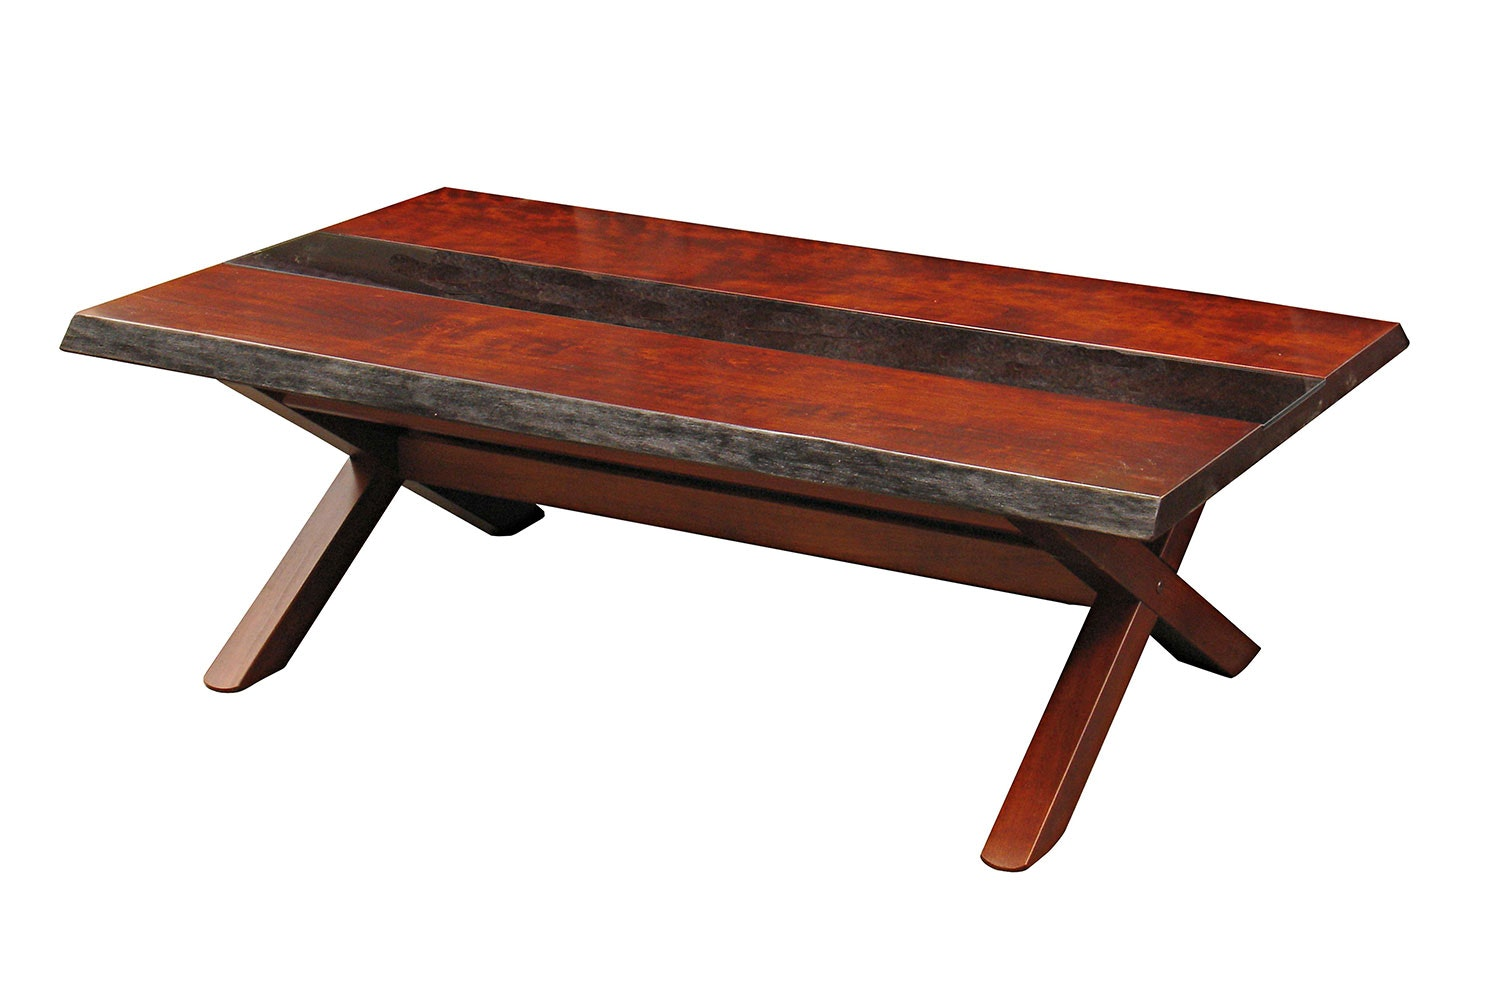 Stunning Wooden Coffee Table